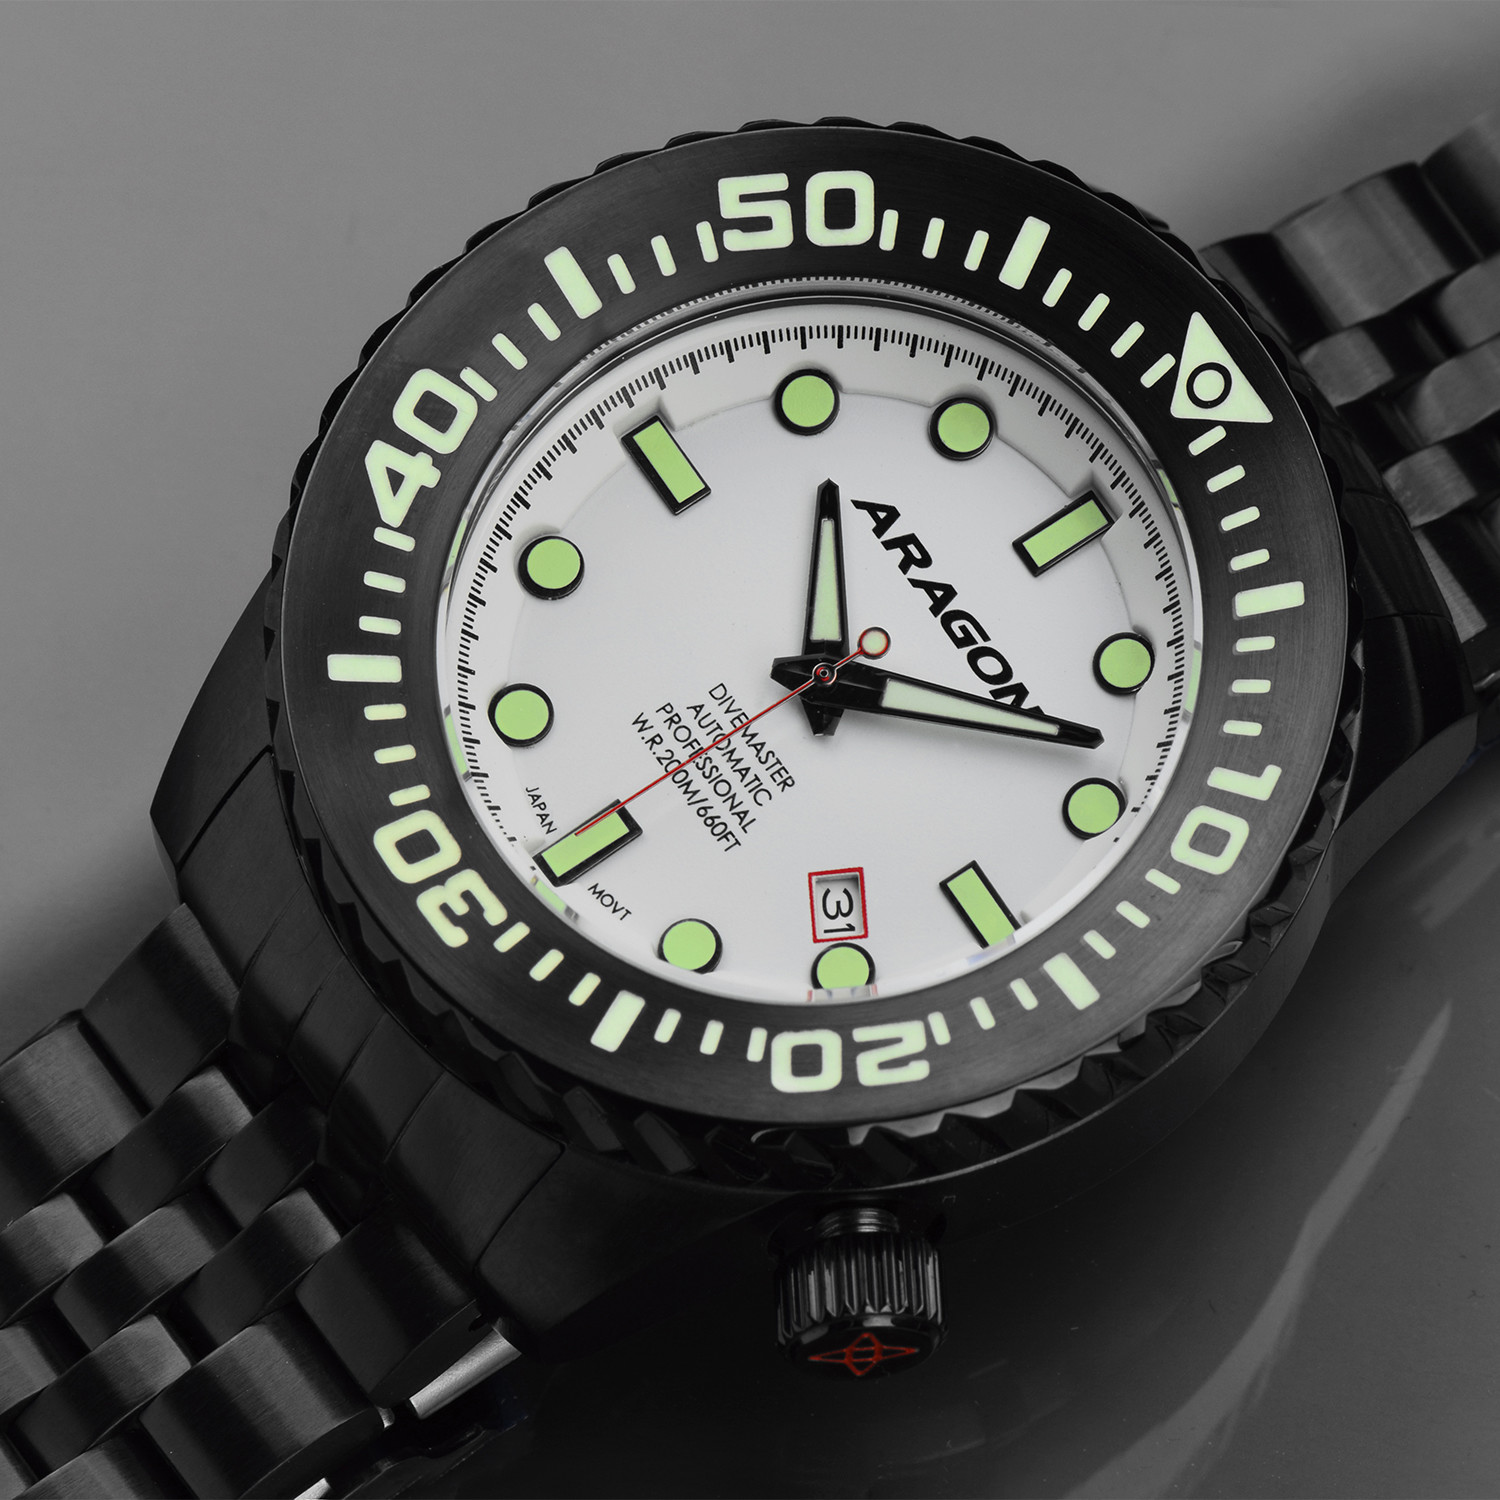 design watches divemaster master sold dive de swiss out item jsp momo gsp